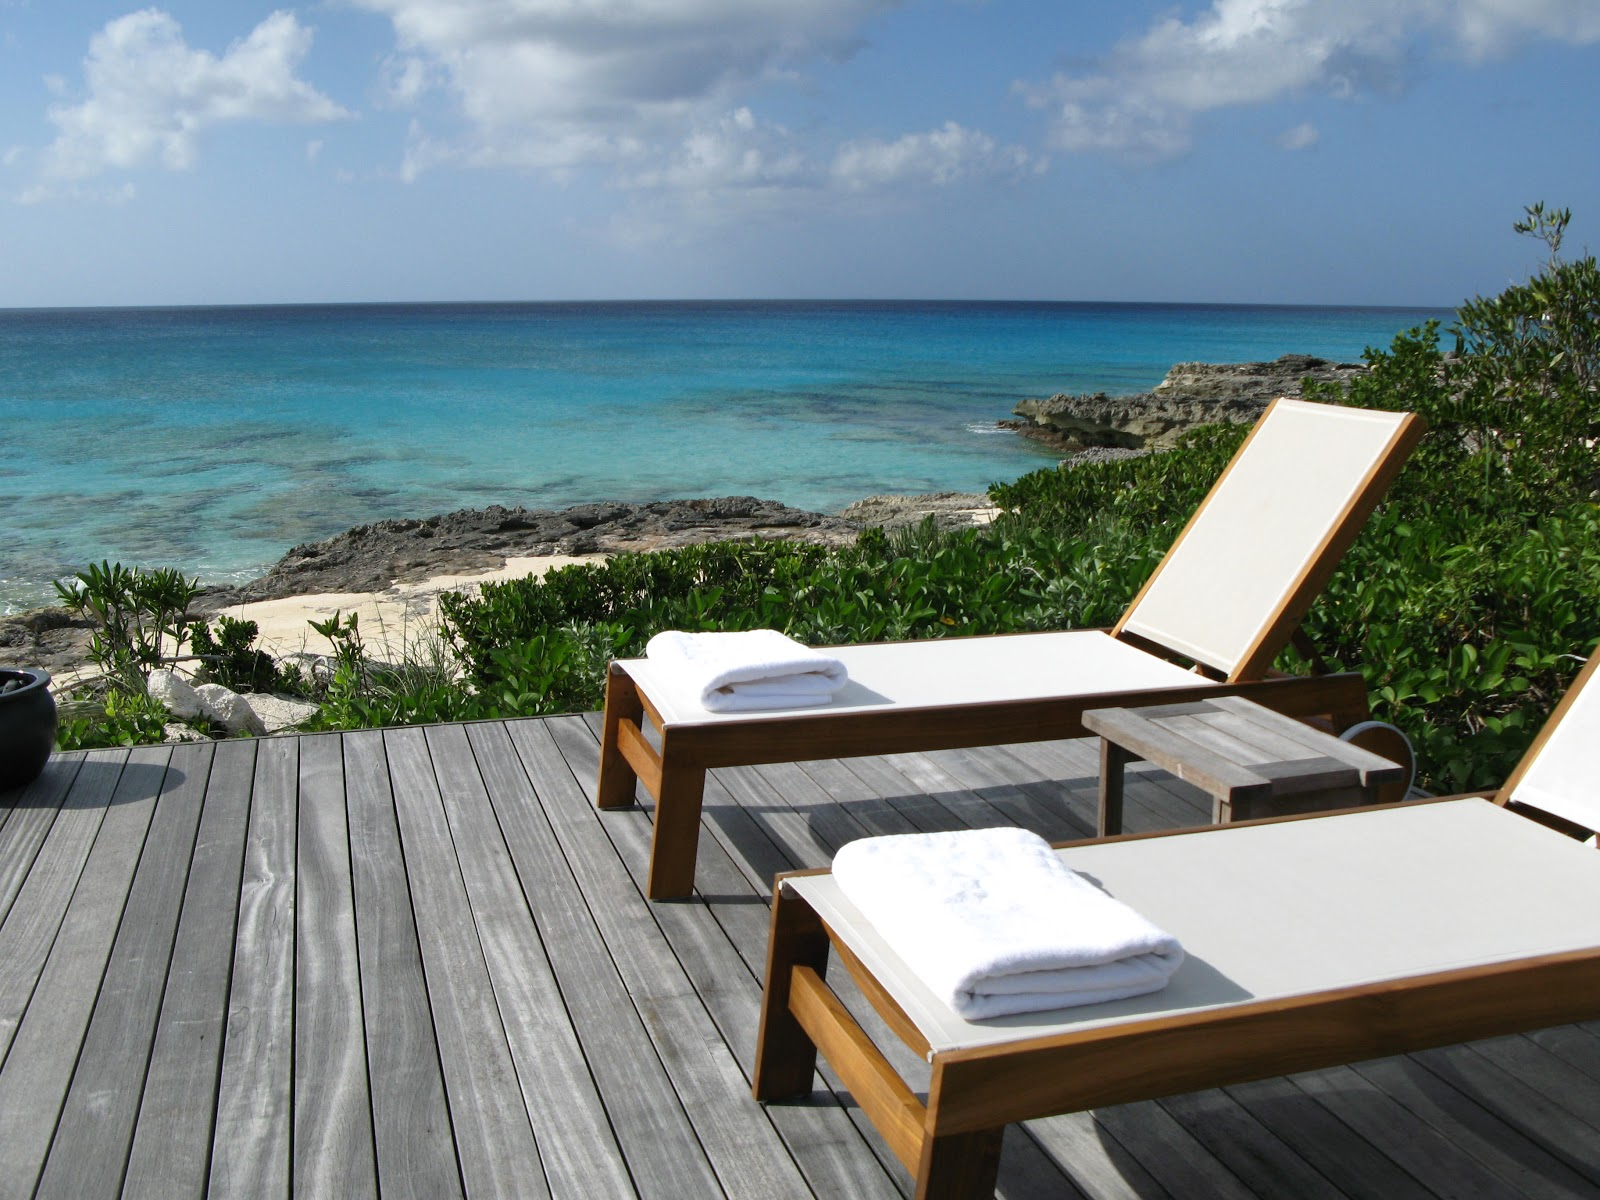 Amanyara turks and caicos islands the ultimate for Five star turks and caicos